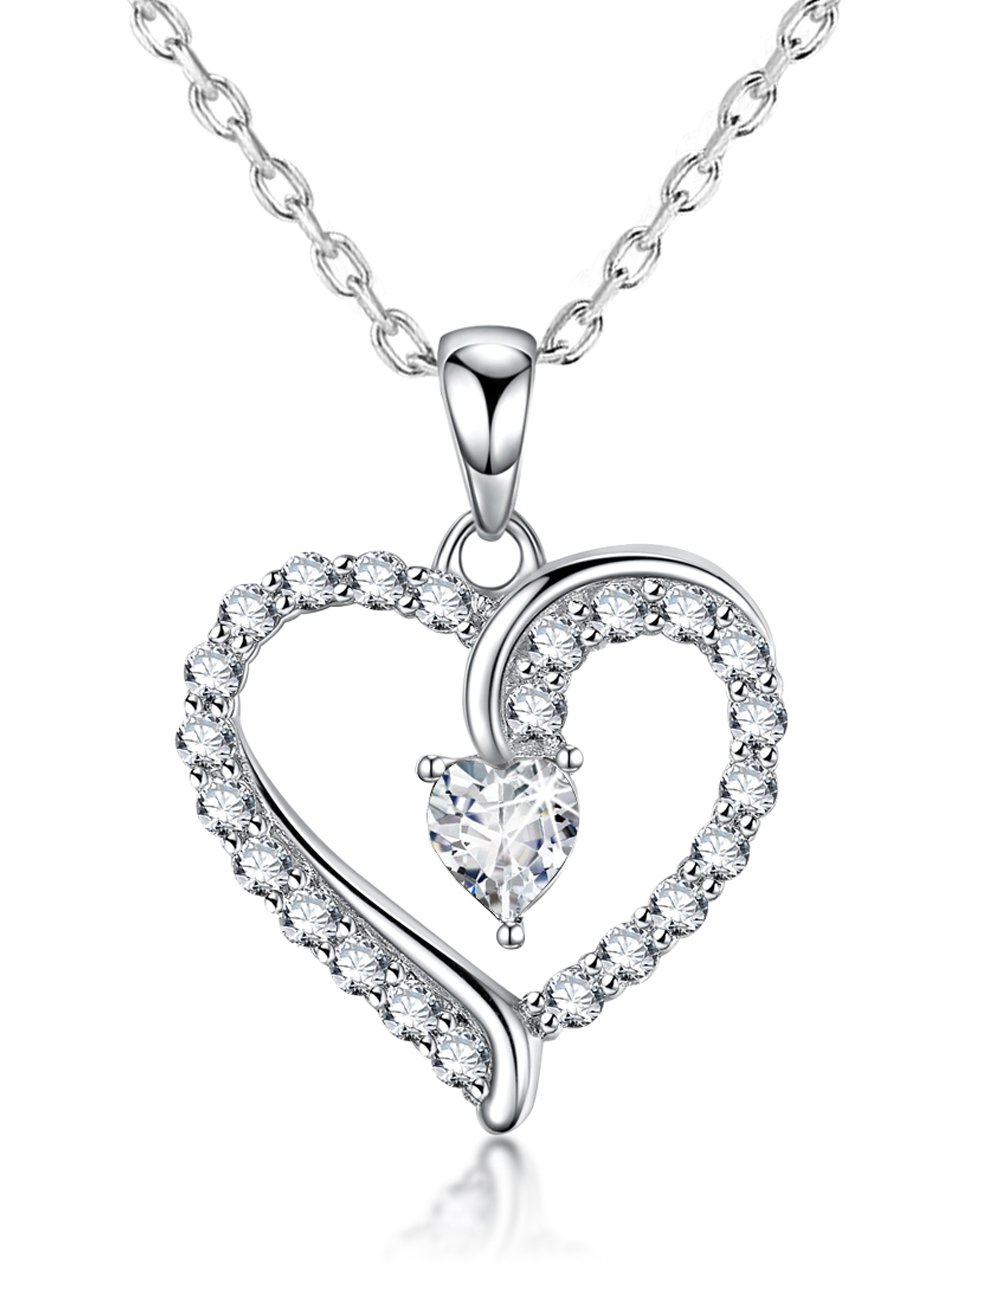 You Are the Only One Love Heart Pendant Gifts for Wife for Women Diamond Necklace Jewelry Birthday Anniversary Gifts for Her Daughter Girlfriend Sterling Silver Swarovski 18''+2'' Chain